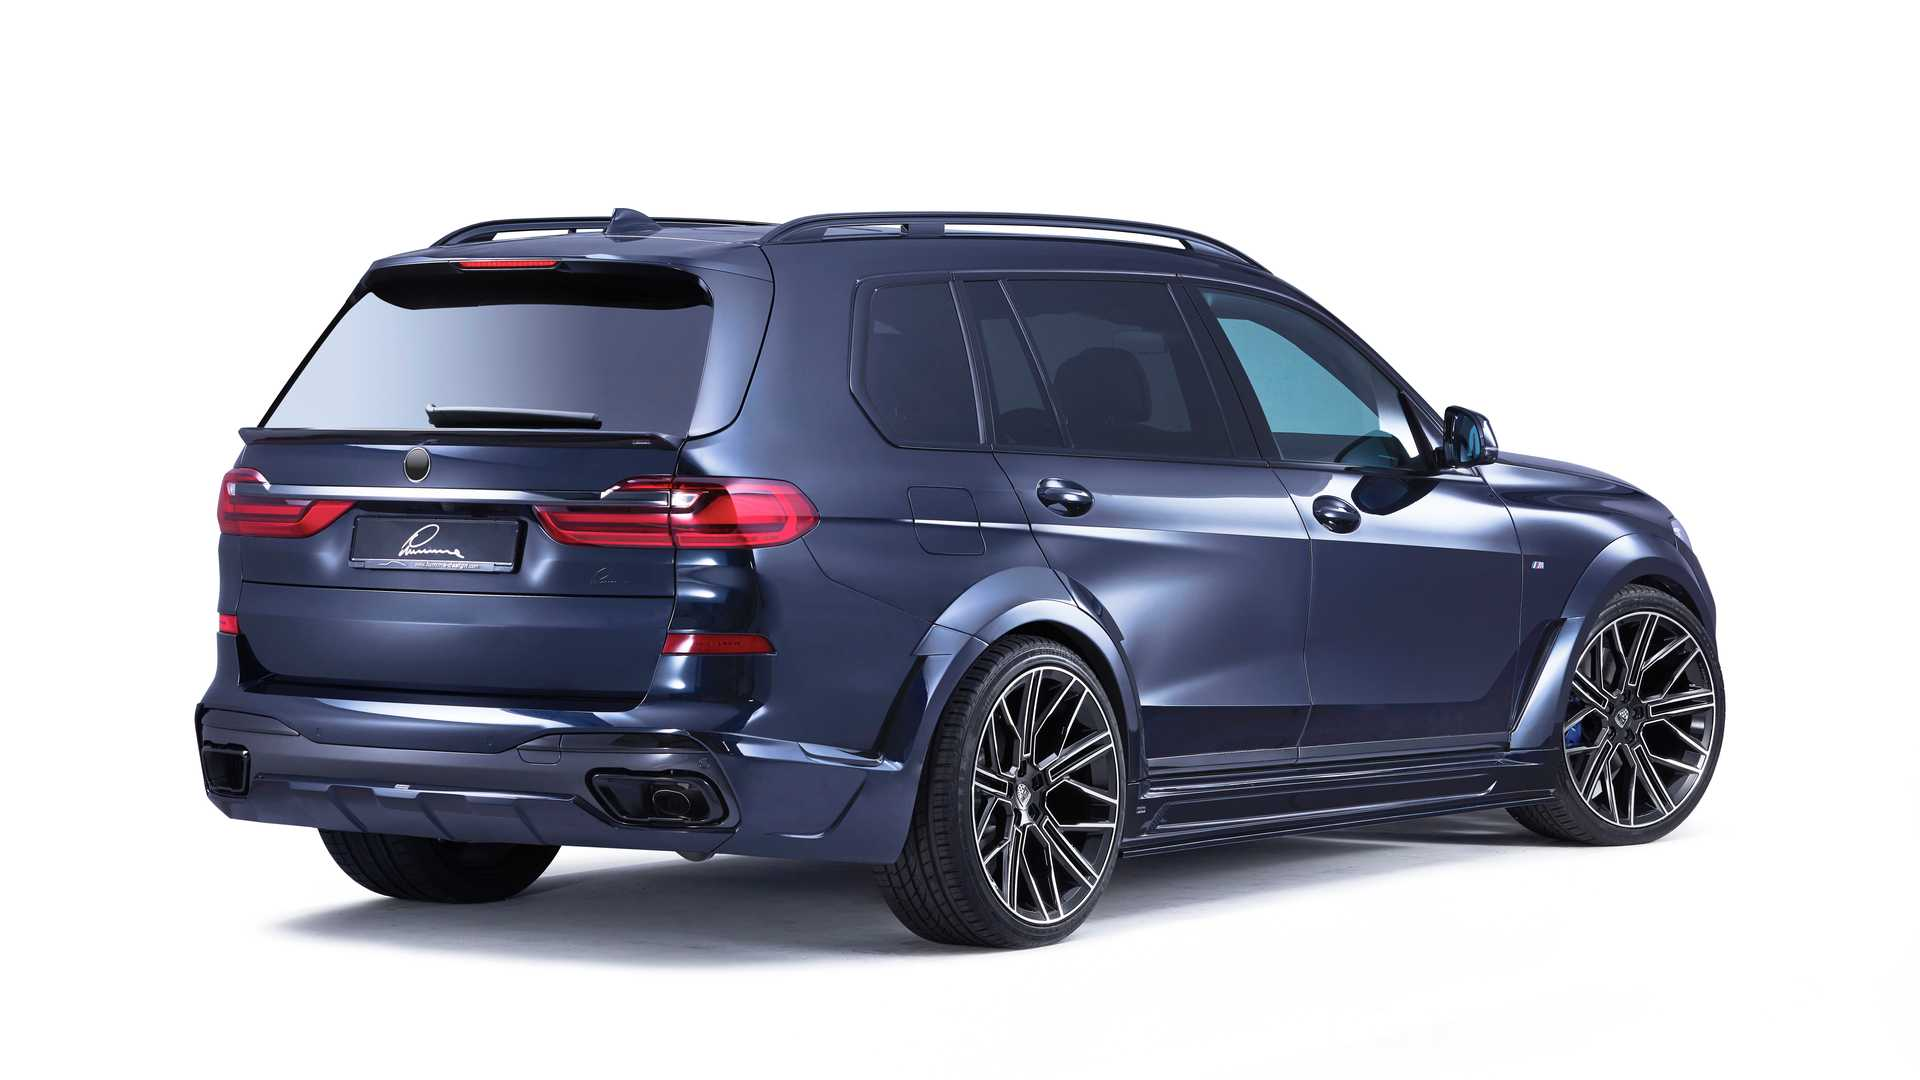 BMW-X7-By-Lumma-Design-13